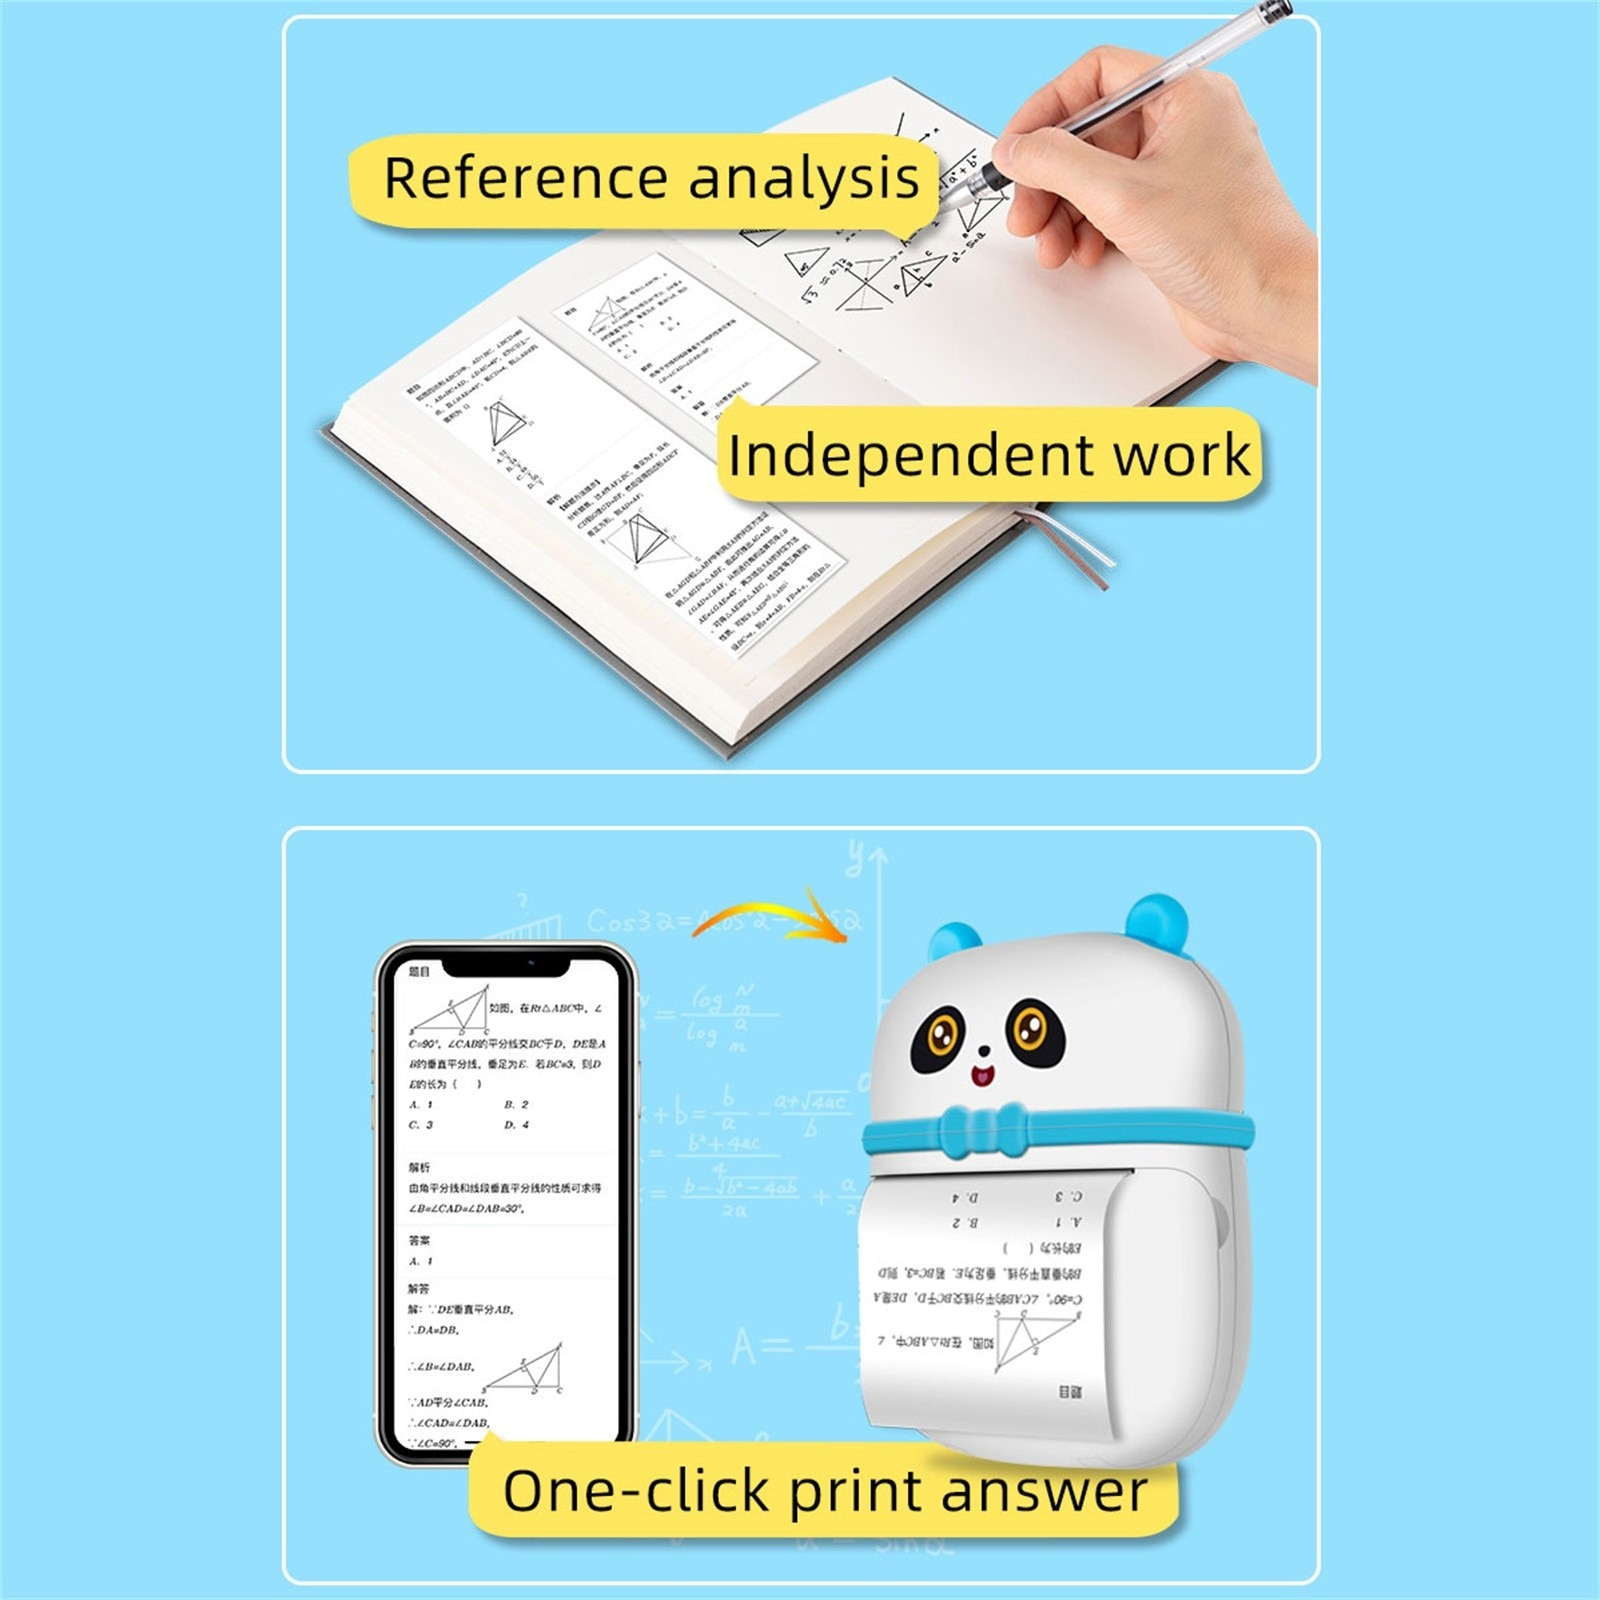 Portable Mini Bluetooth Thermal Printer Wirelessly Printer photo label printer Mobile Phone Control dropshipping Wholesale